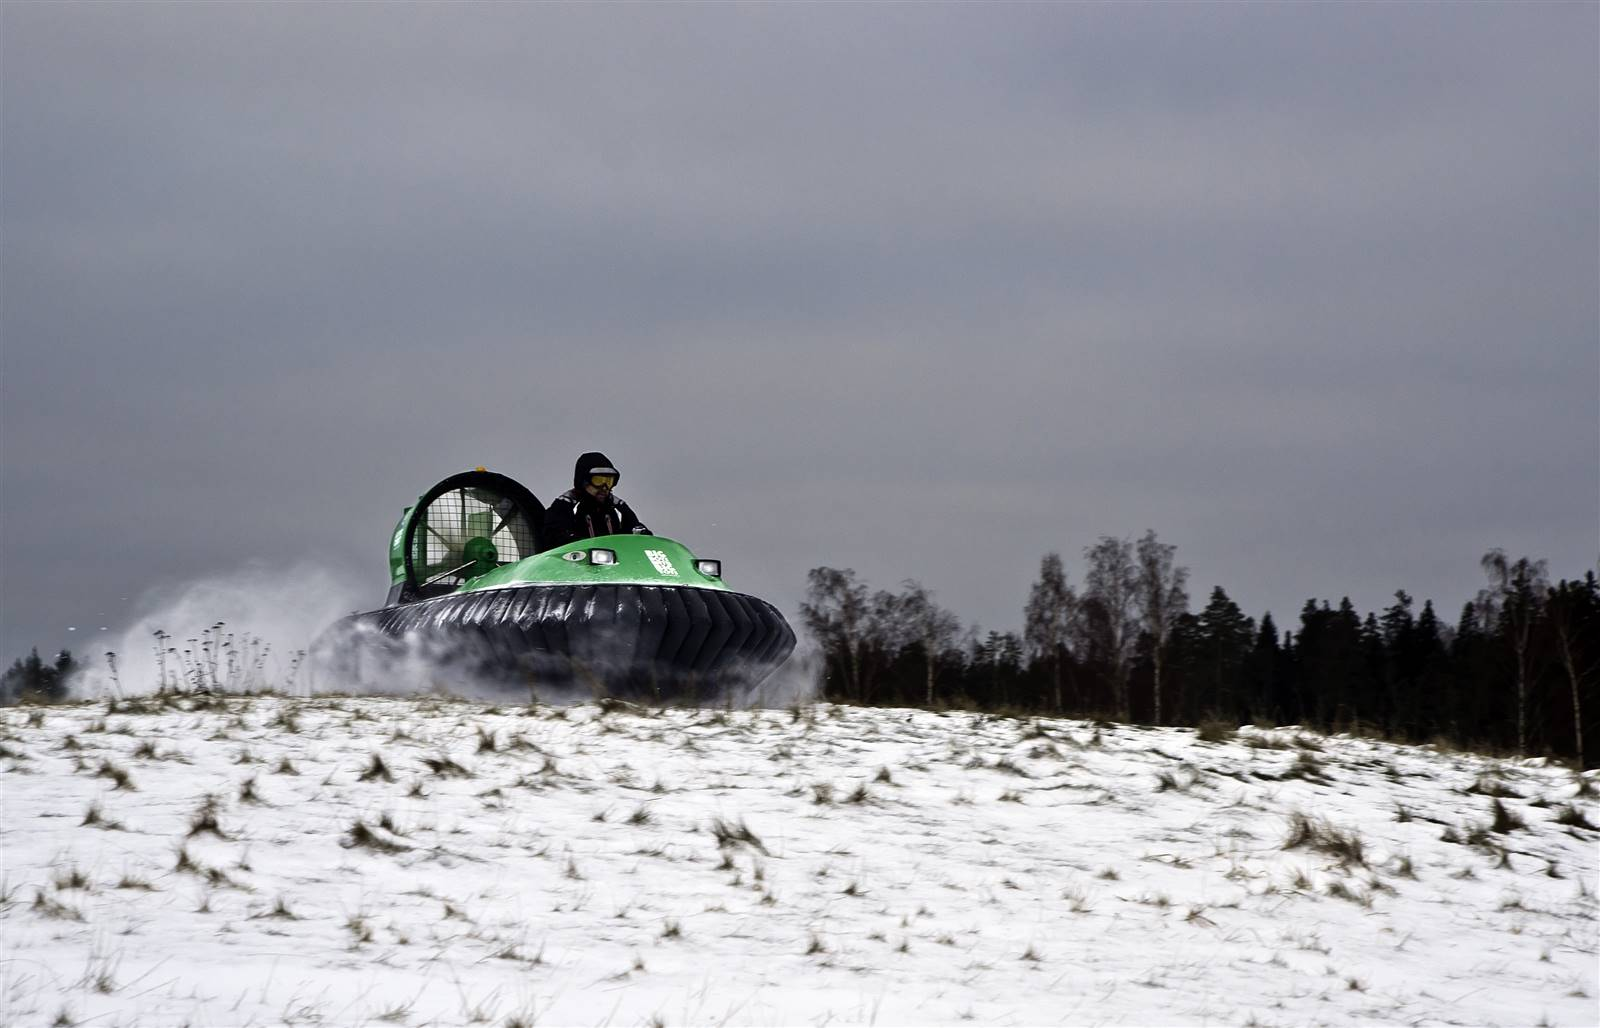 Hovercraft in the Snow